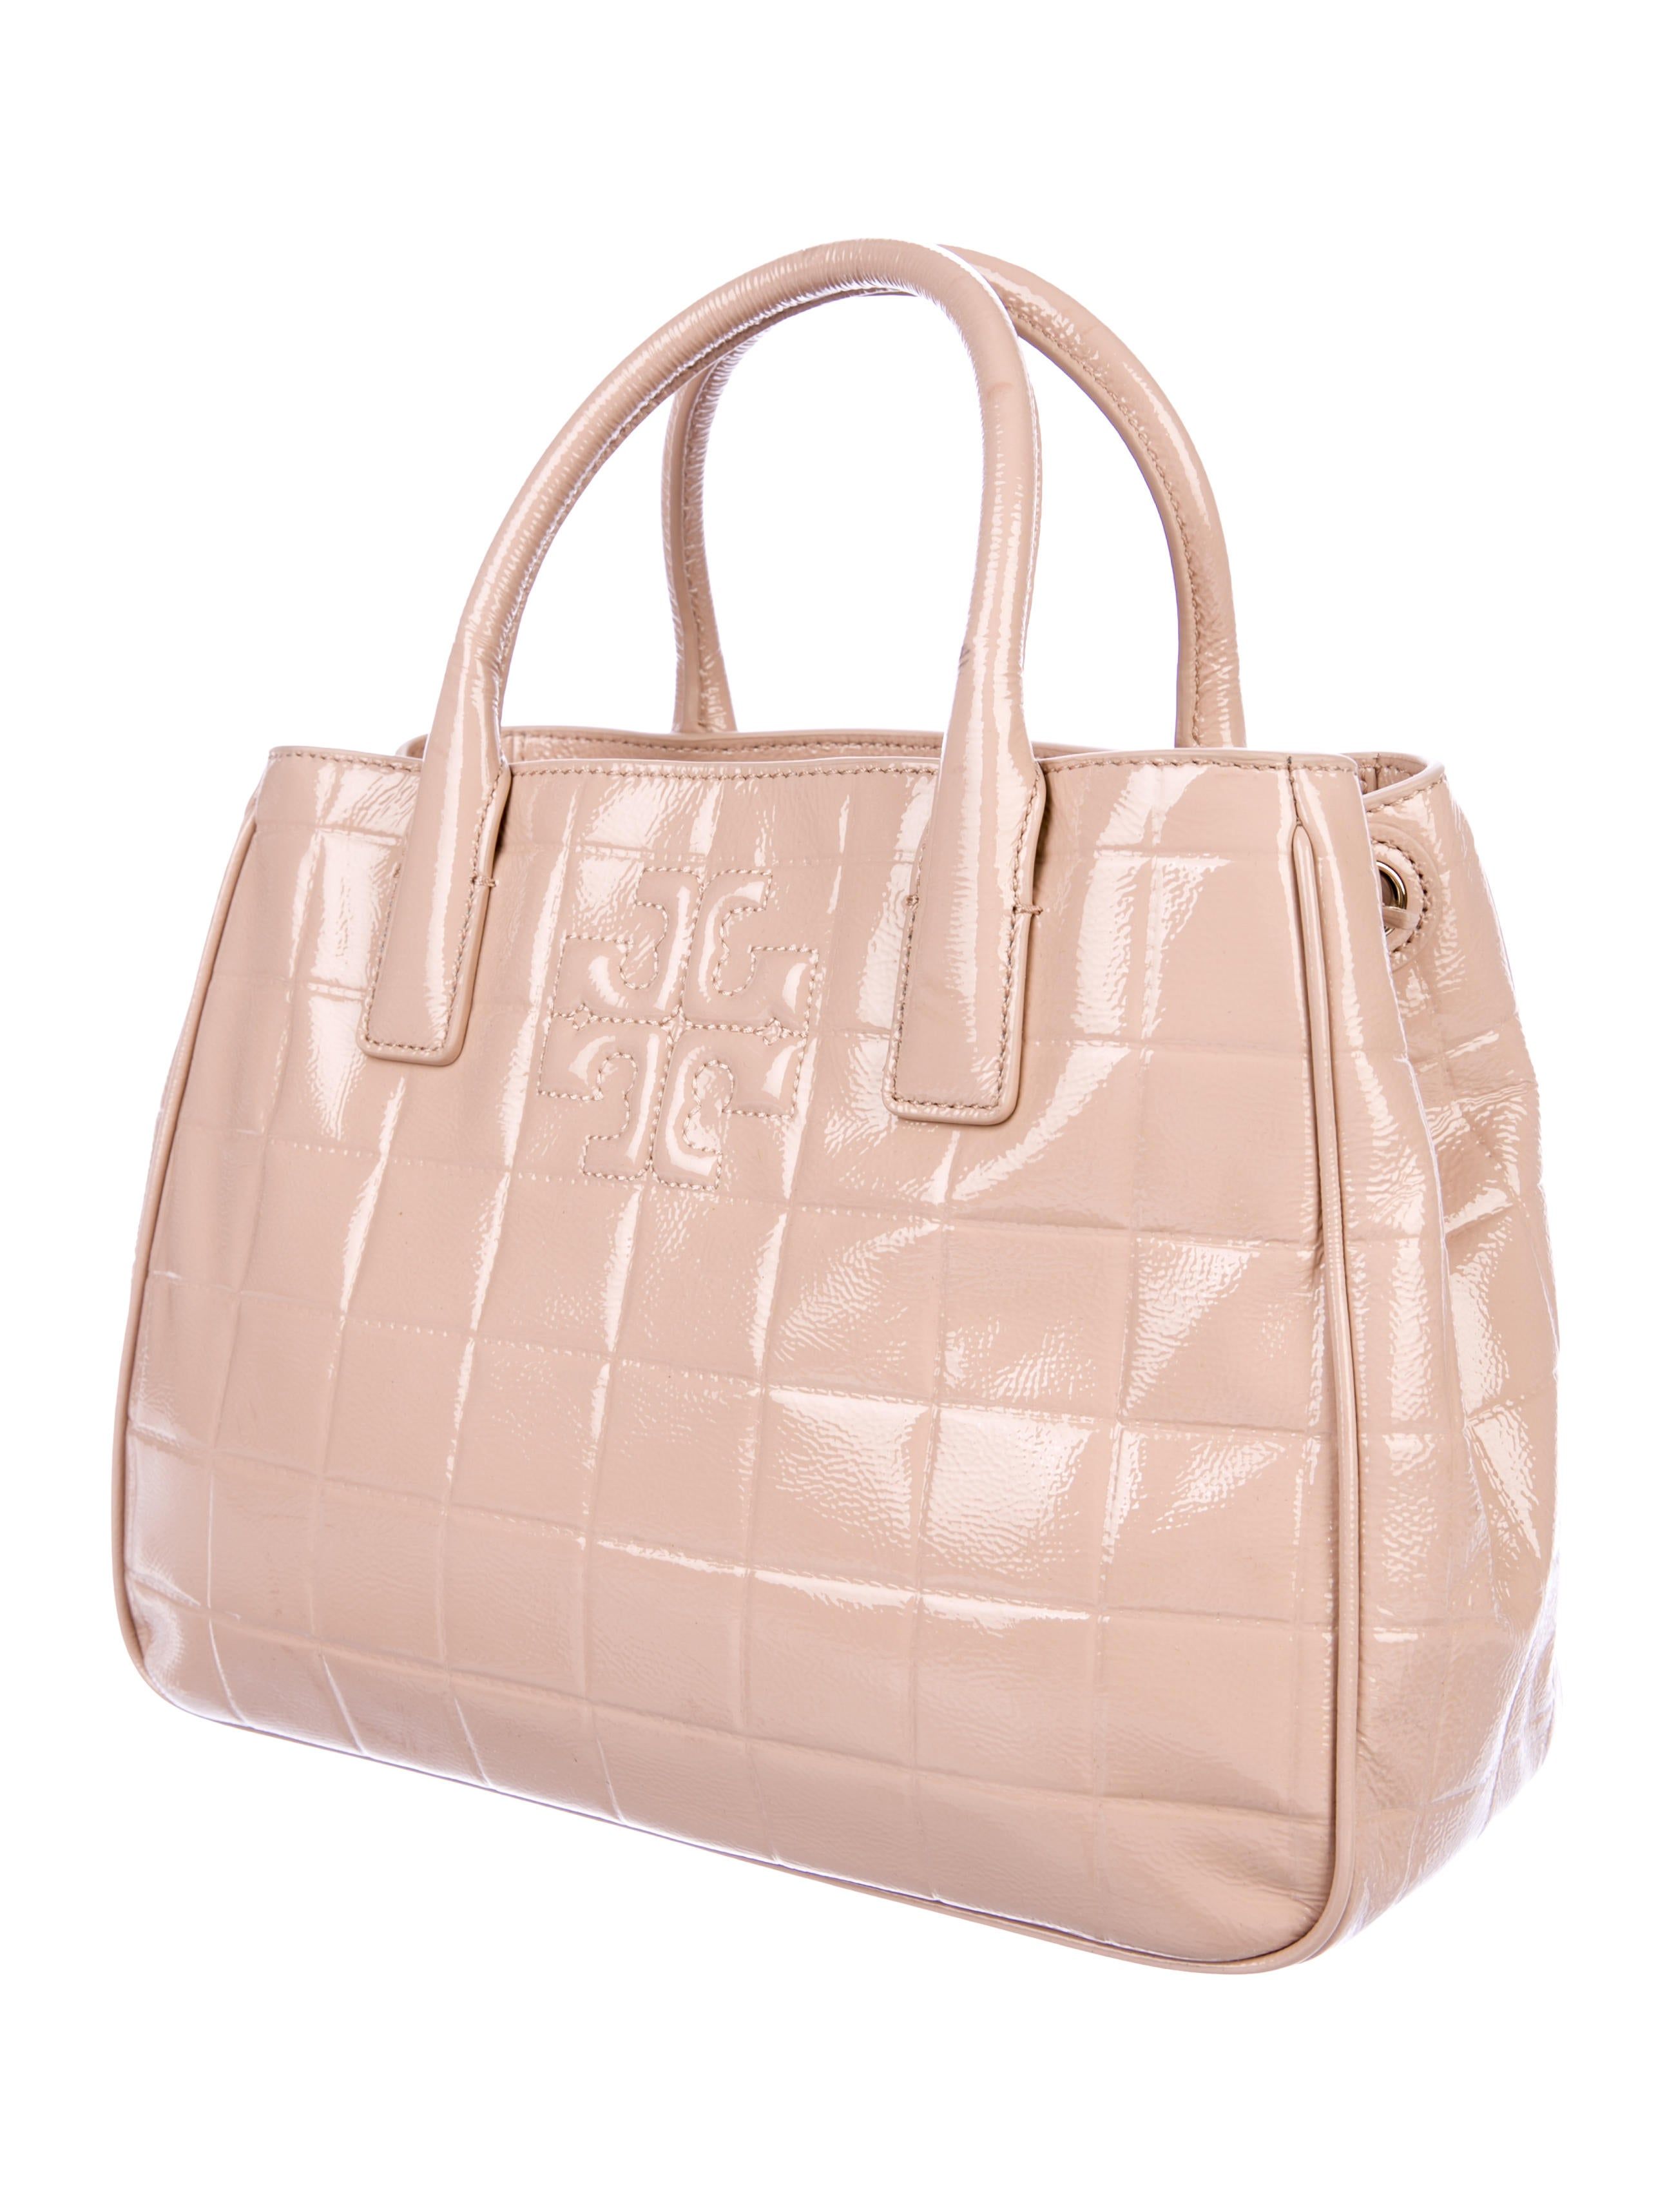 Tory Burch Marion Quilted Patent Leather Tote Handbags Wto145077